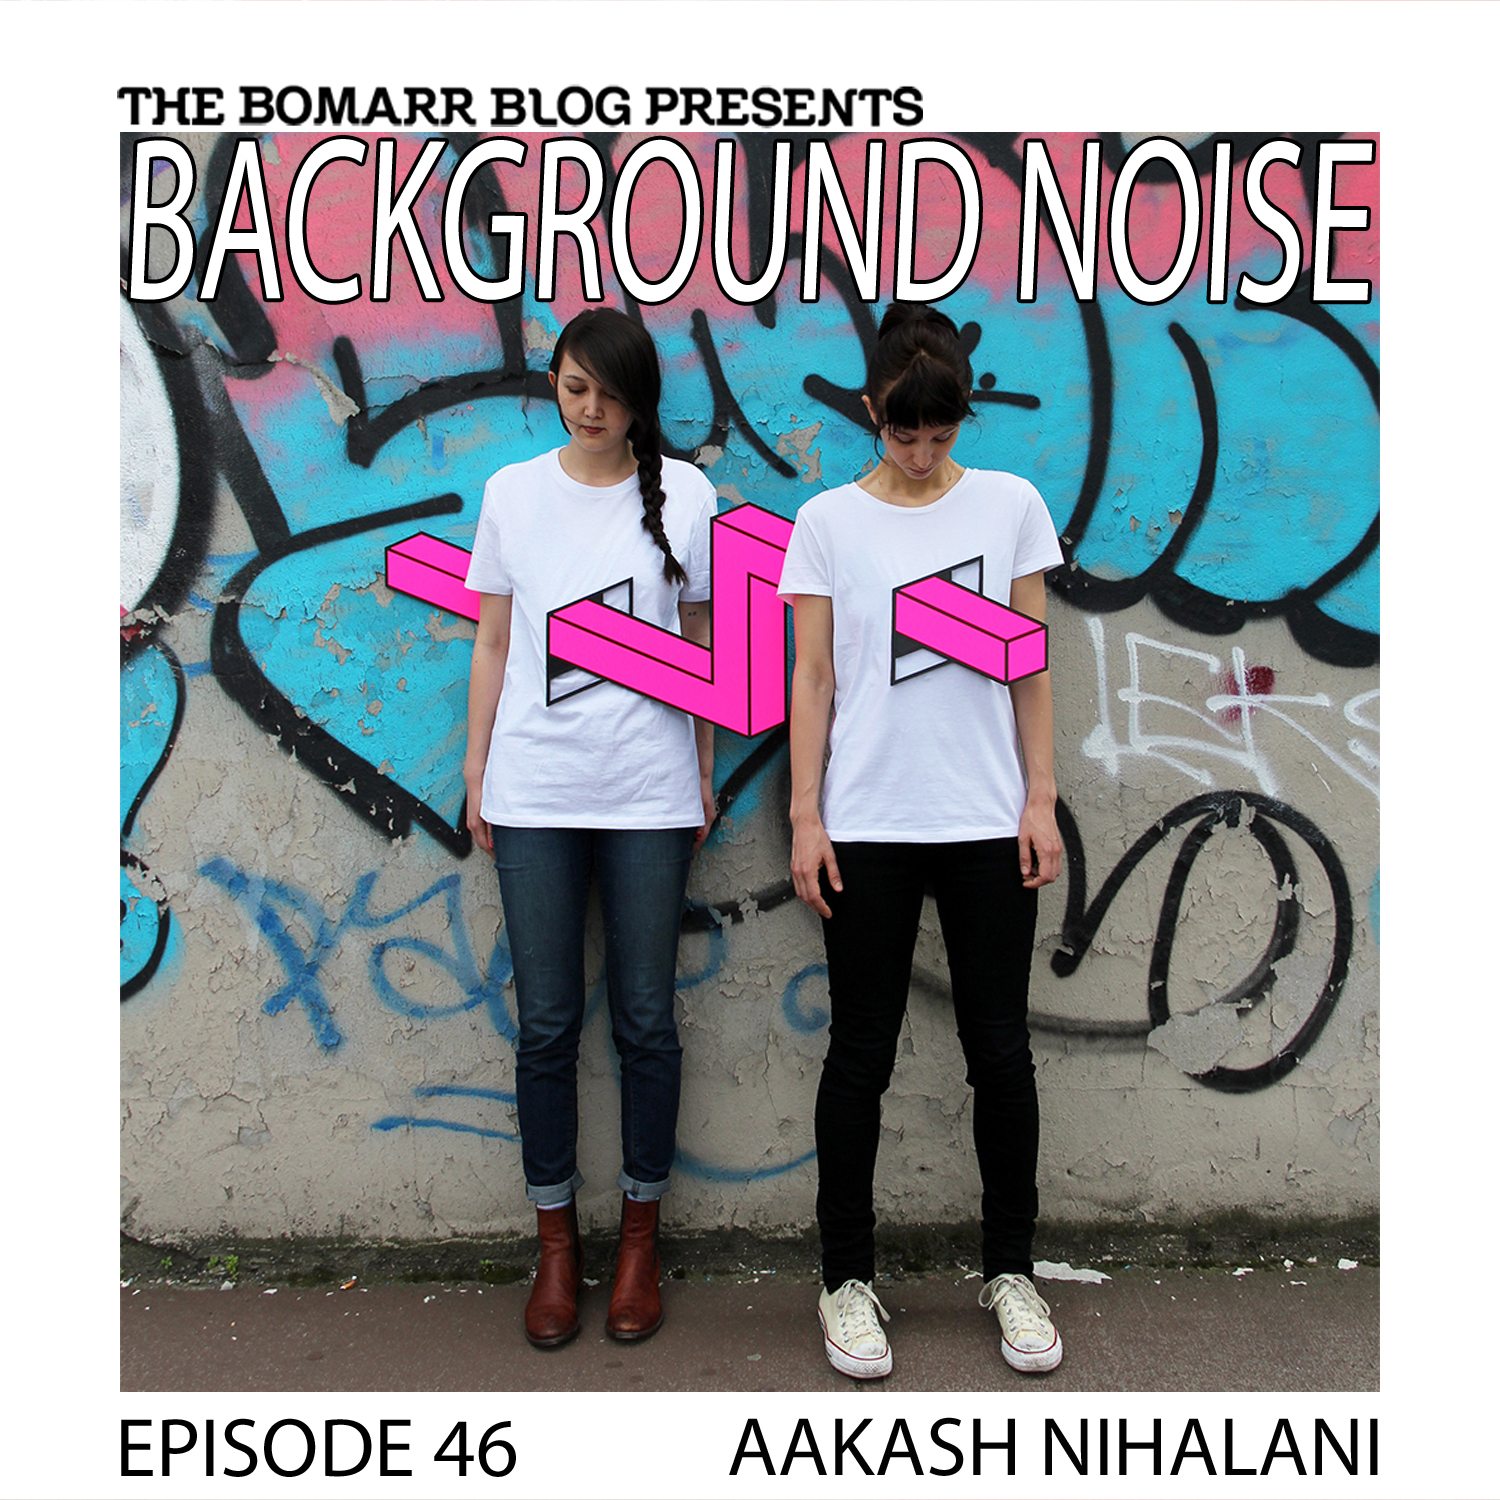 THE BACKGROUND NOISE PODCAST SERIES FOCUSES ON THE MUSIC THAT ARTISTS LISTEN TO WHEN THEY WORK, WHAT MUSIC INSPIRES THEM, OR JUST MUSIC THEY LIKE. THIS WEEK, IN EPISODE 46, THE FOCUS IS ON ARTIST AAKASH NIHALANI   IMAGE © AAKASH NIHALANI